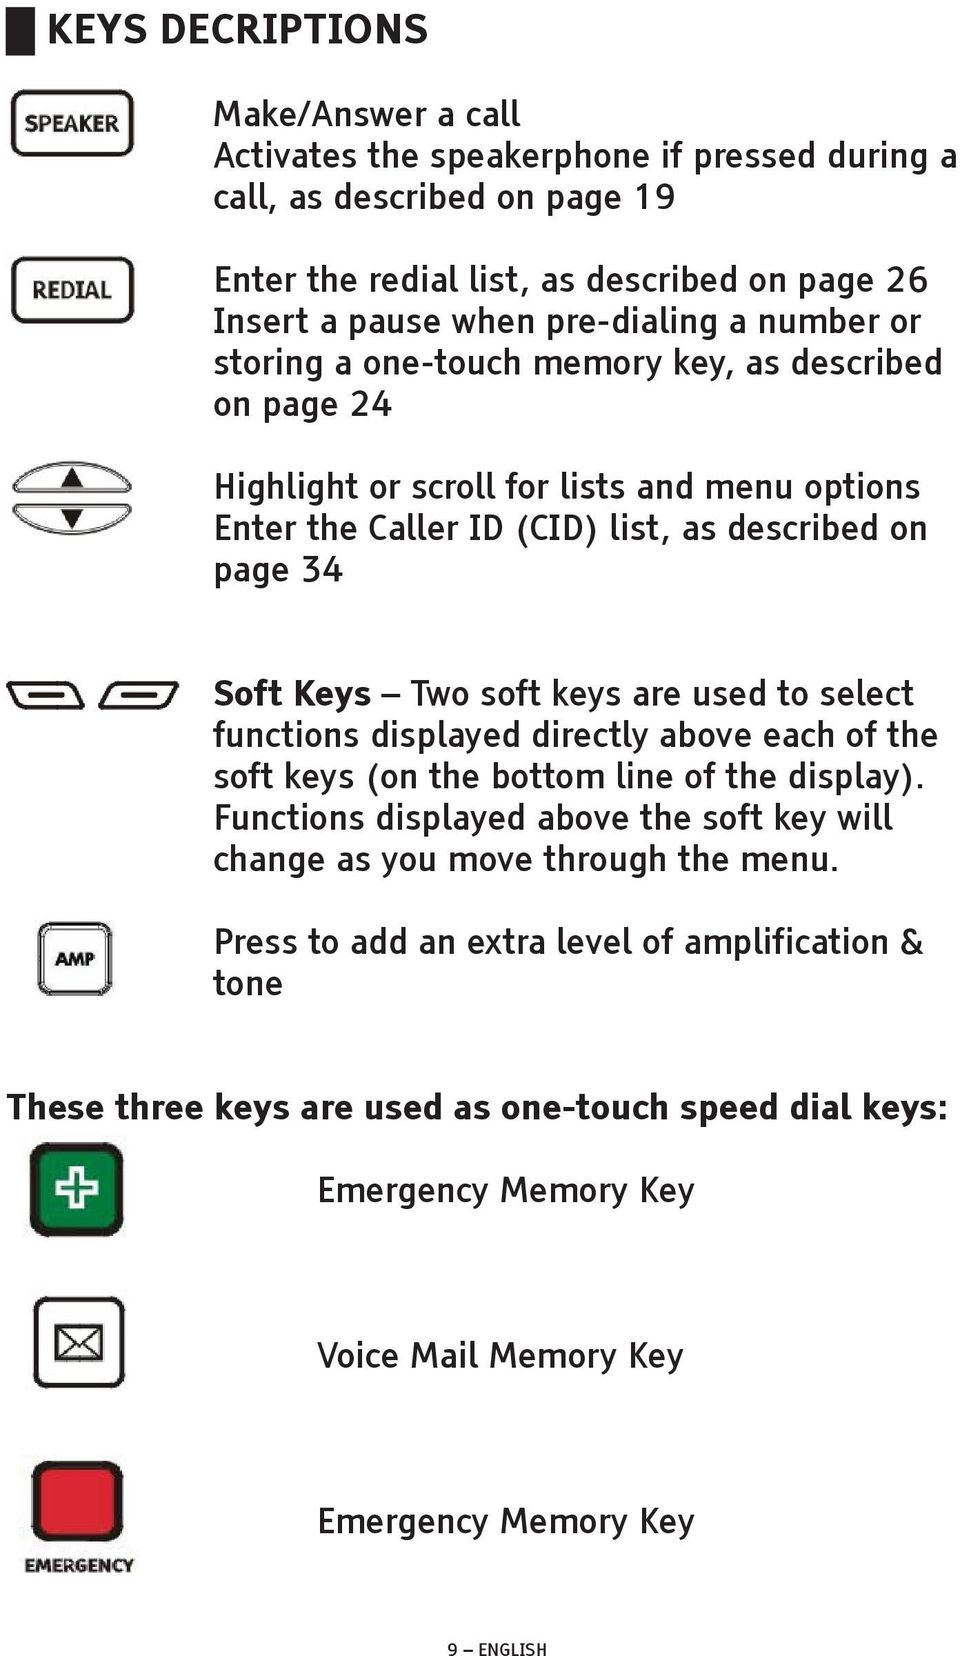 Keys Two soft keys are used to select functions displayed directly above each of the soft keys (on the bottom line of the display).